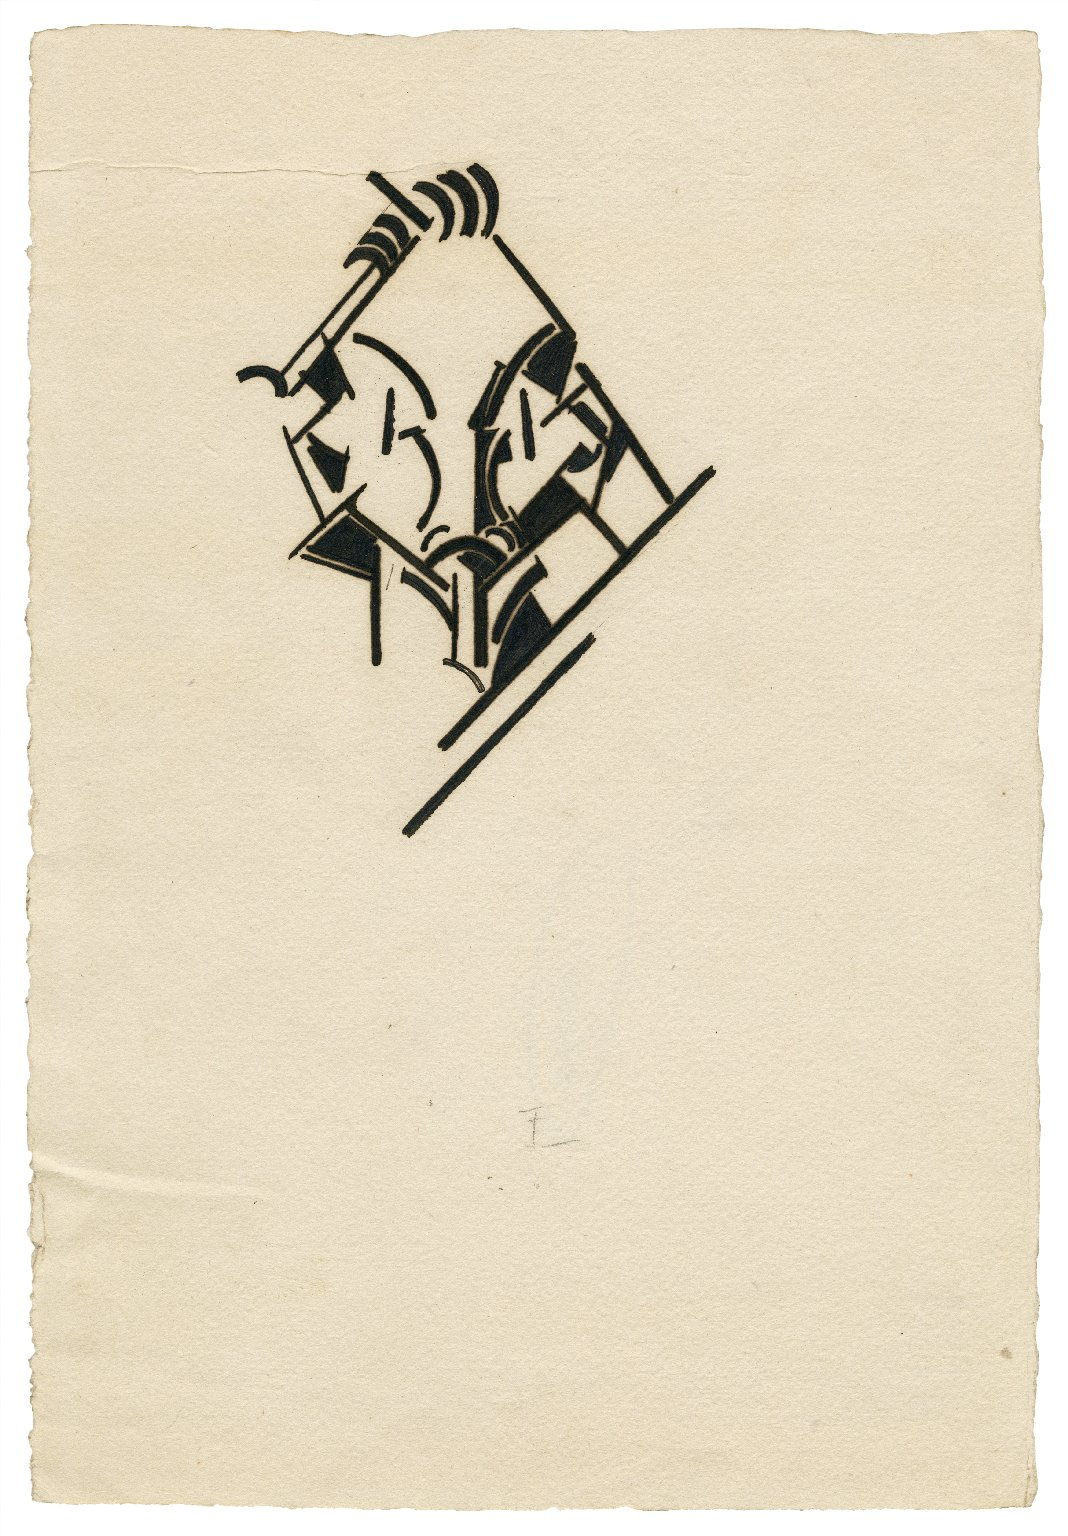 [Timon of Athens. A set of title pages and page decor] [graphic] / [Wyndham Lewis].